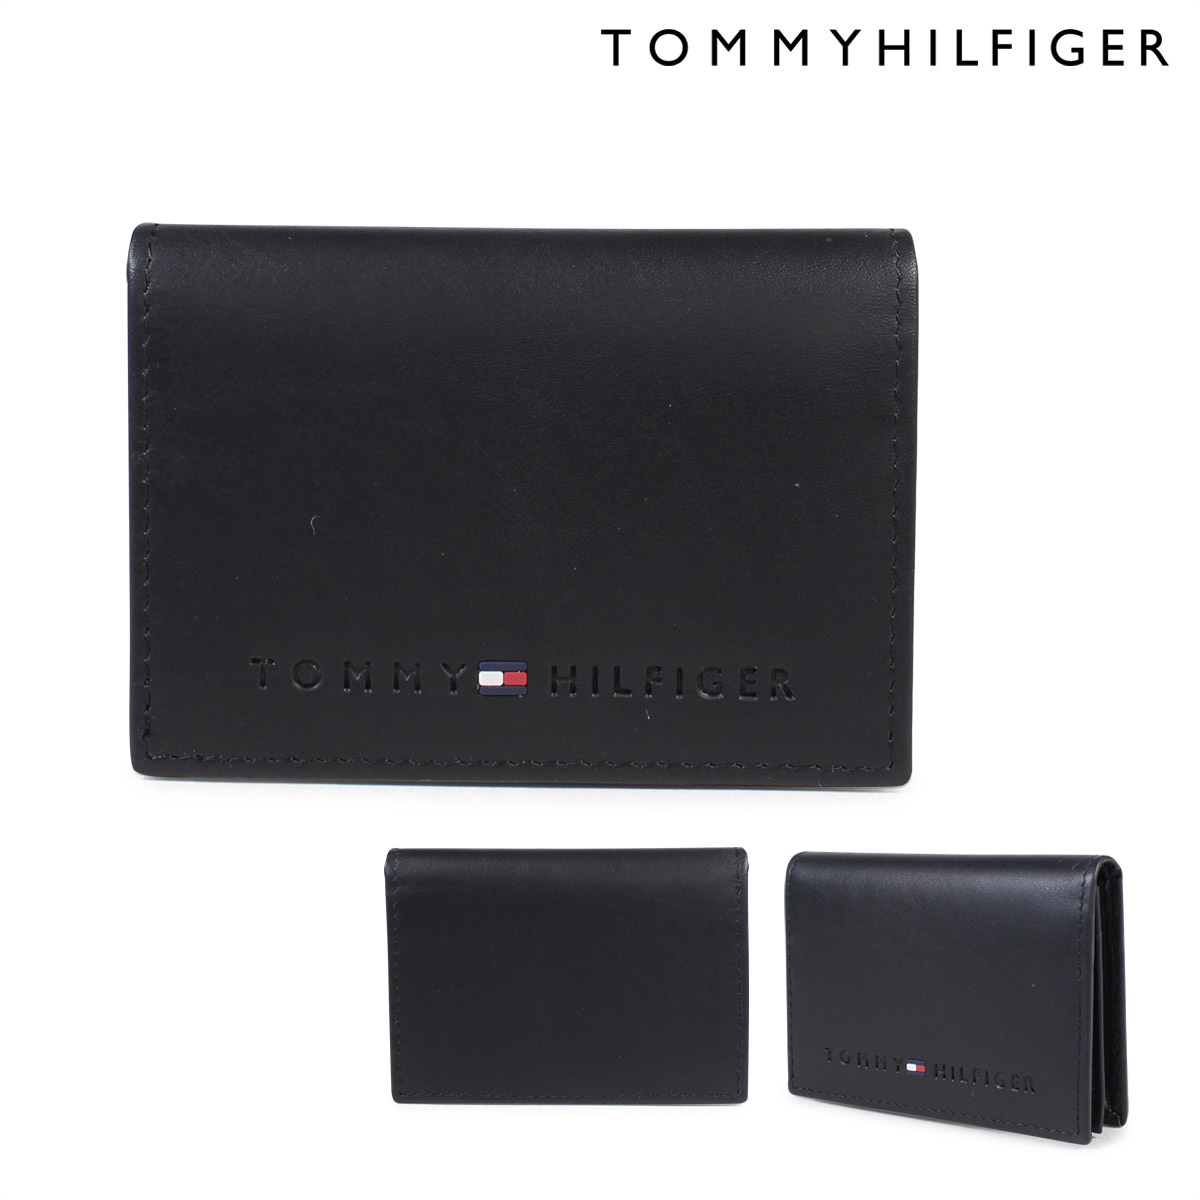 low priced c5bb2 d2d1e TOMMY HILFIGER WALLESLEY CARD HOLDER card case トミーヒルフィガーメンズレザー 4860  31TL20X014-001 black [6/4 reentry load]